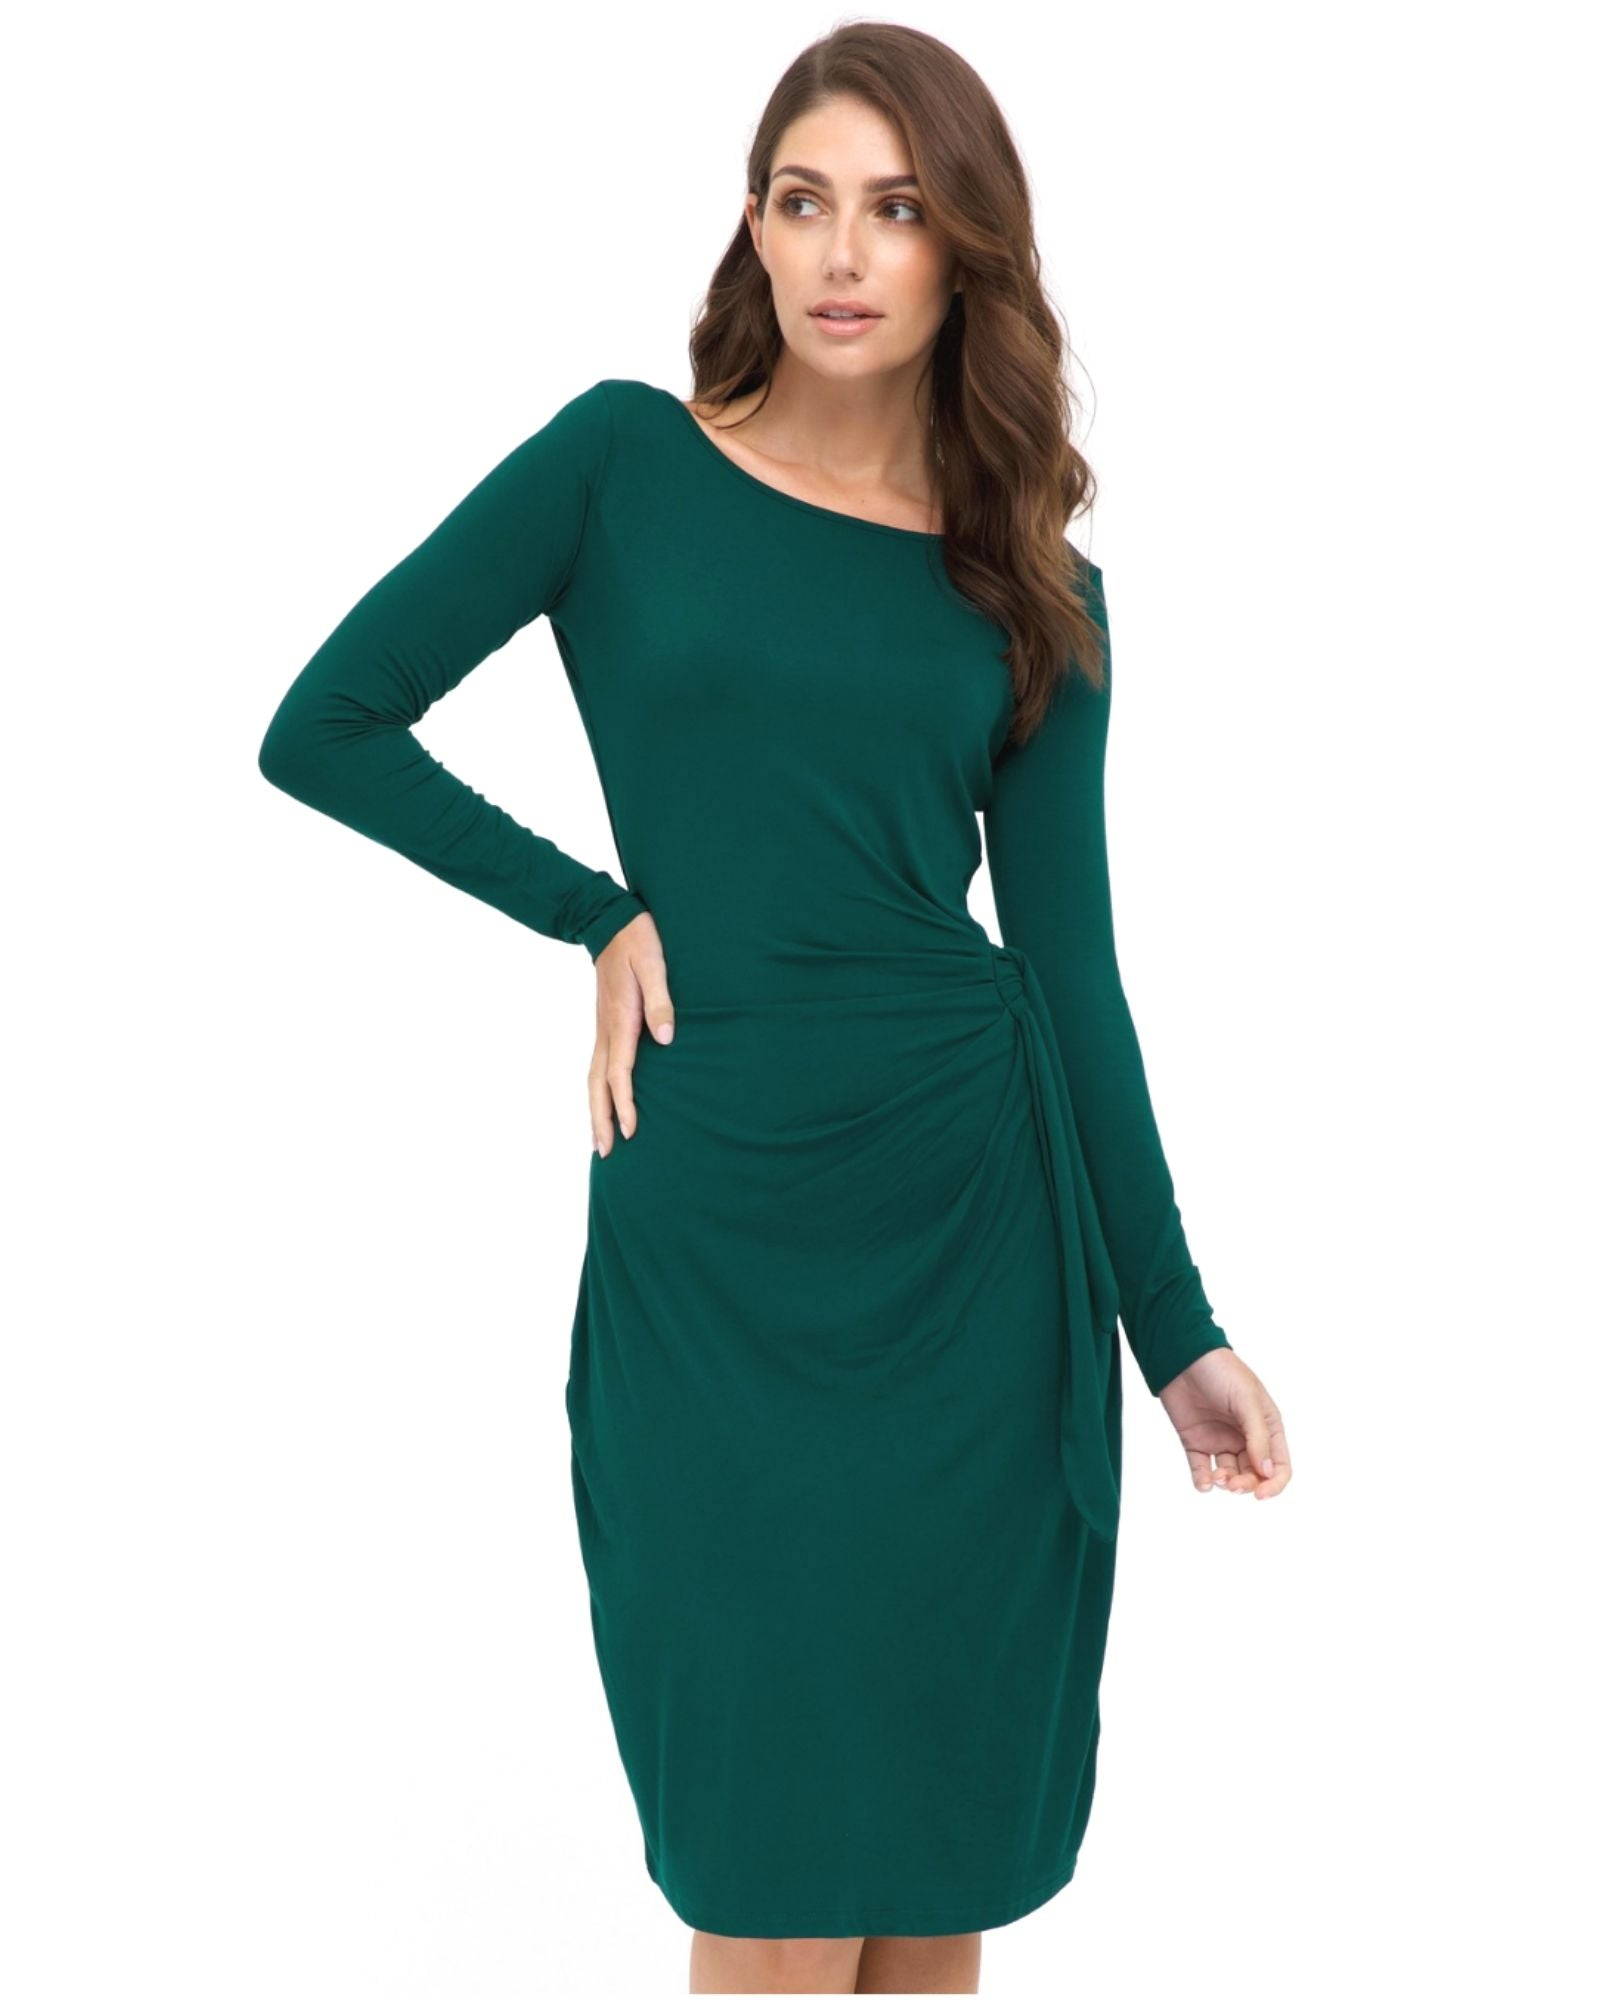 Bamboo Long Seeve Wrap Dress - Dark Teal- Size 10 -22